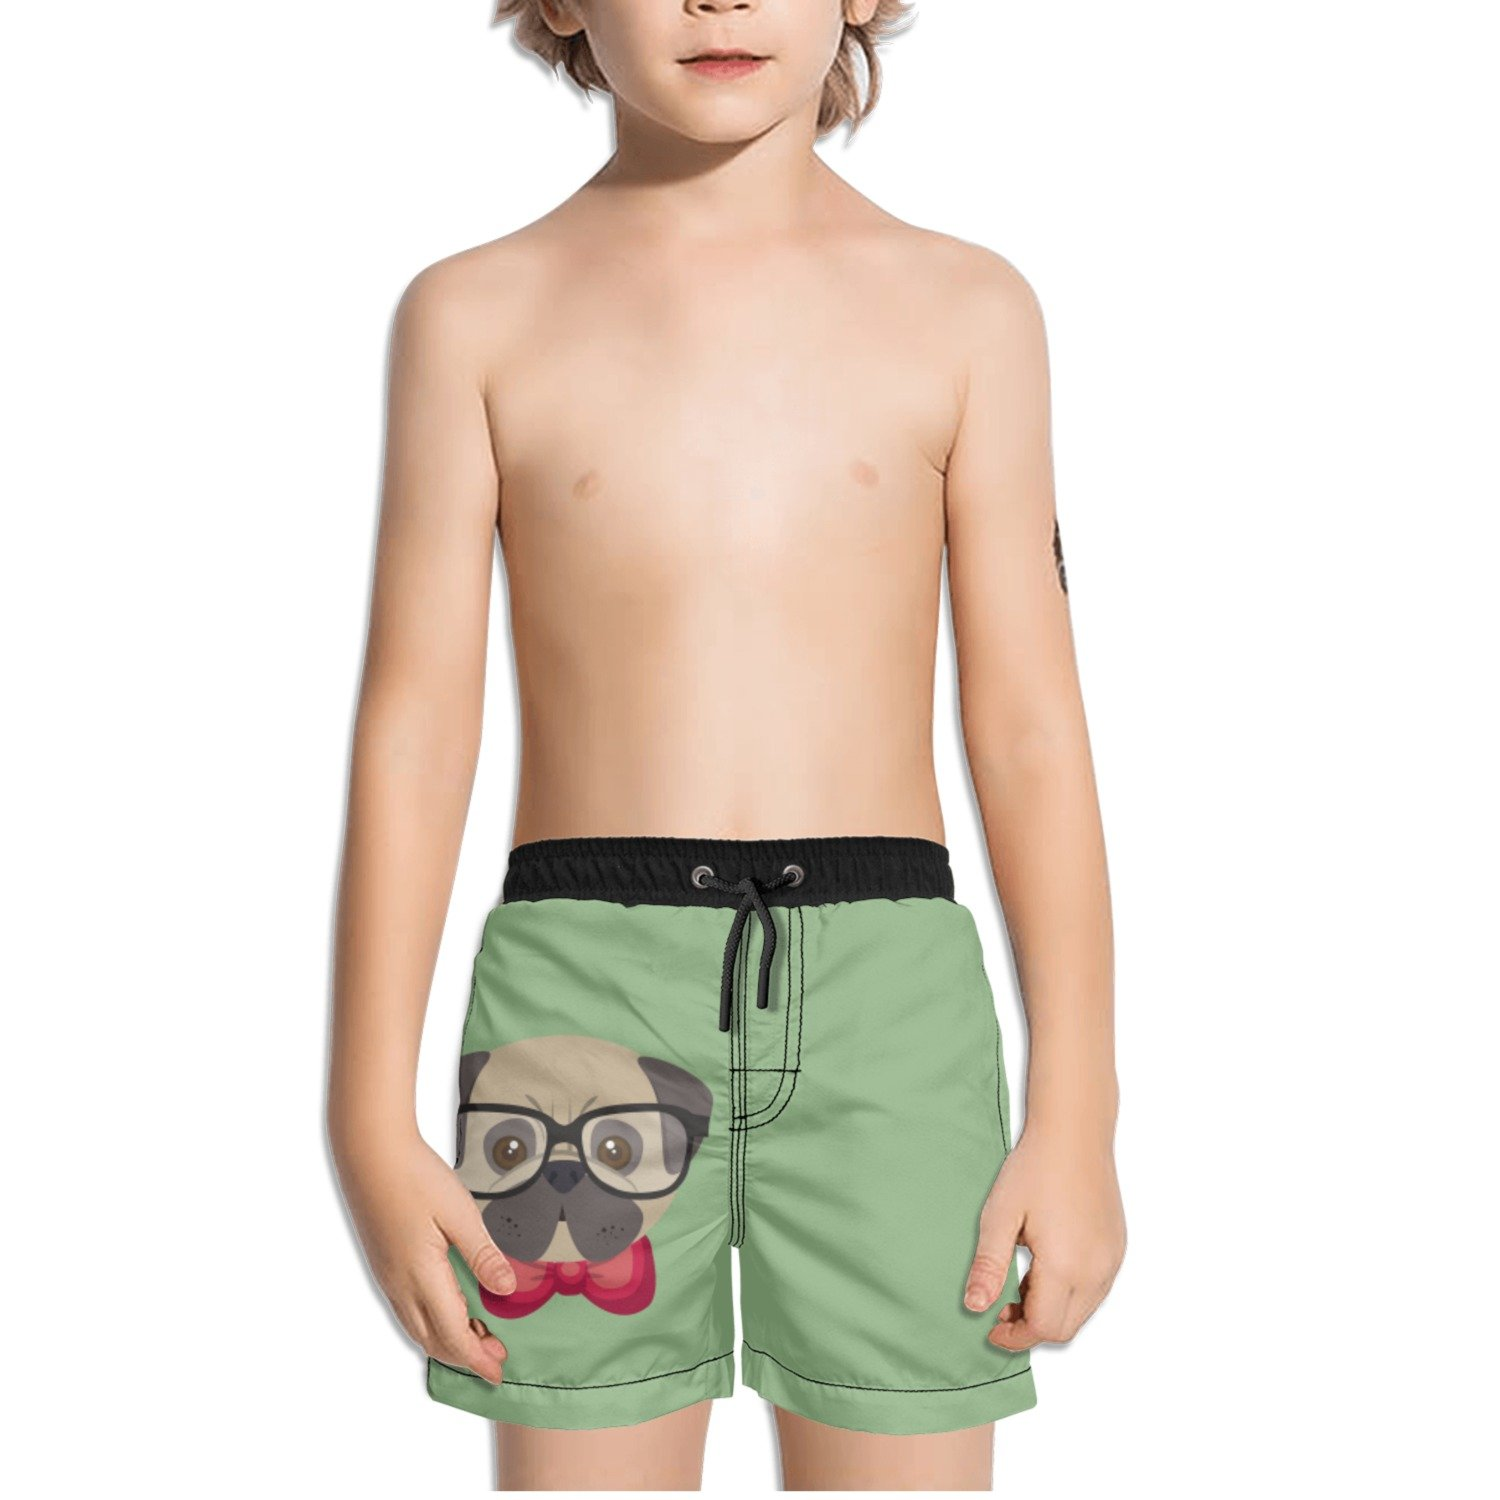 Juliuse Marthar Pug Gifts Fashionable Swim Trunks Quick Dry Beach Board Shorts for Boys